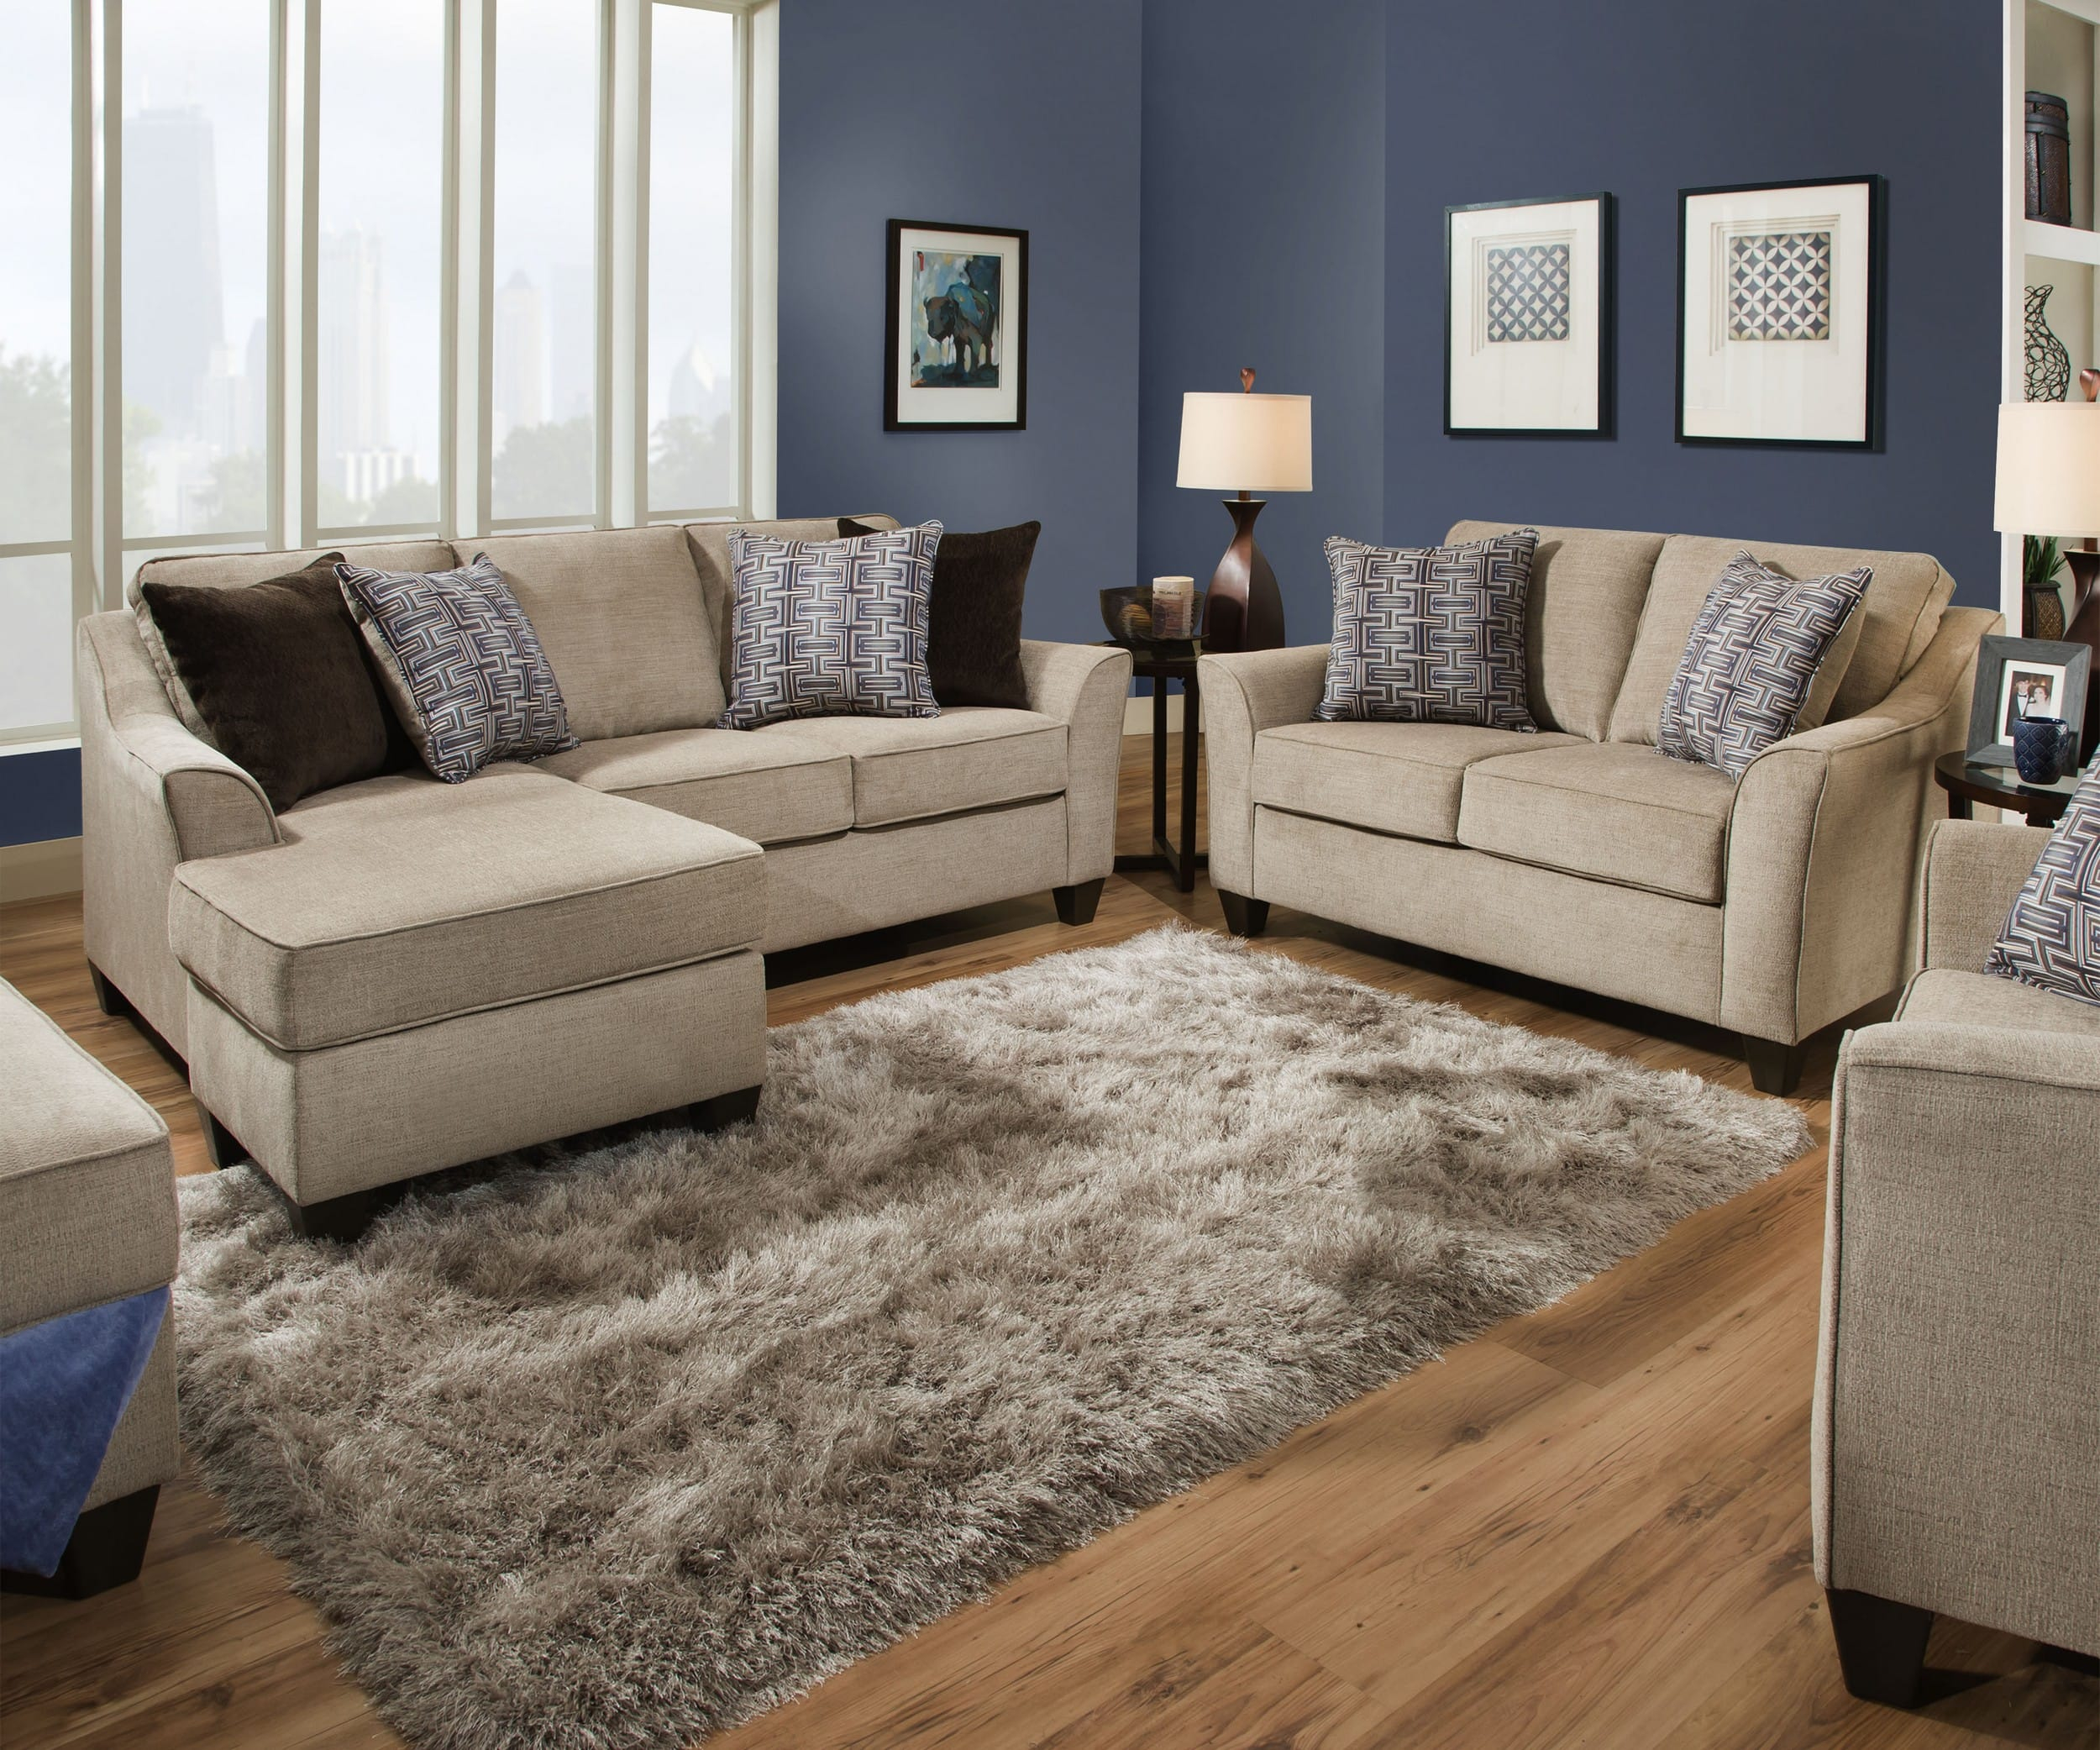 Simmons Upholstery Alamo Taupe 3 Piece Living Room Set With Sofa within 14 Clever Concepts of How to Build Simmons Living Room Set